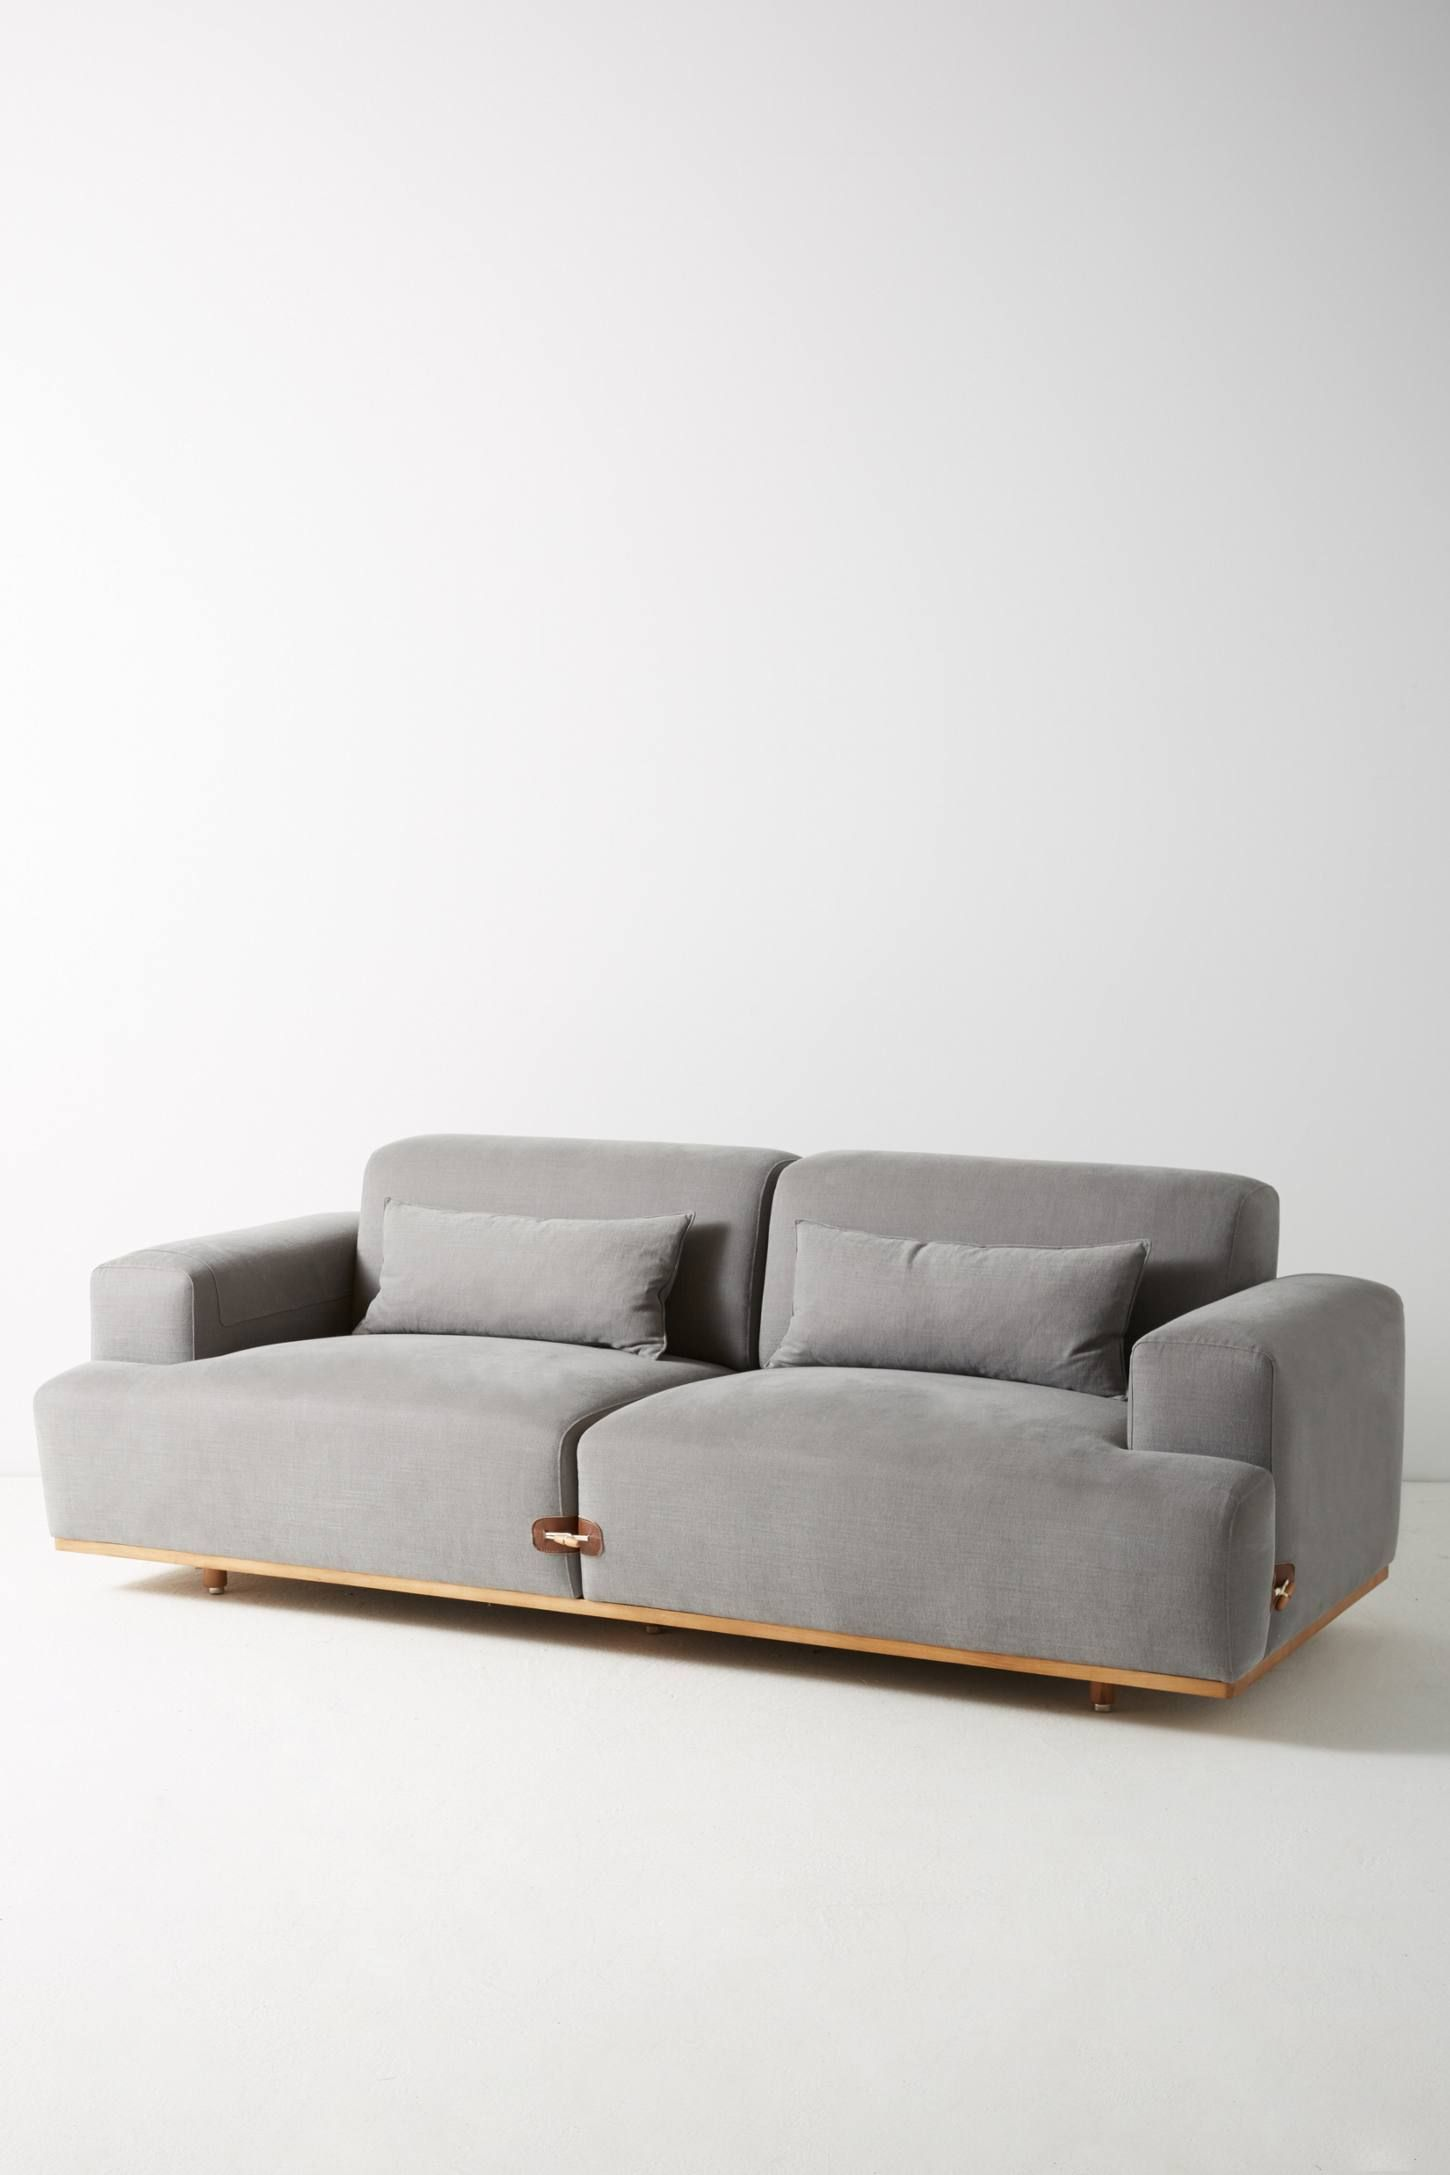 Shop The BOSC Duffle Sofa And More Anthropologie At Anthropologie Today.  Read Customer Reviews, Discover Product Details And More.